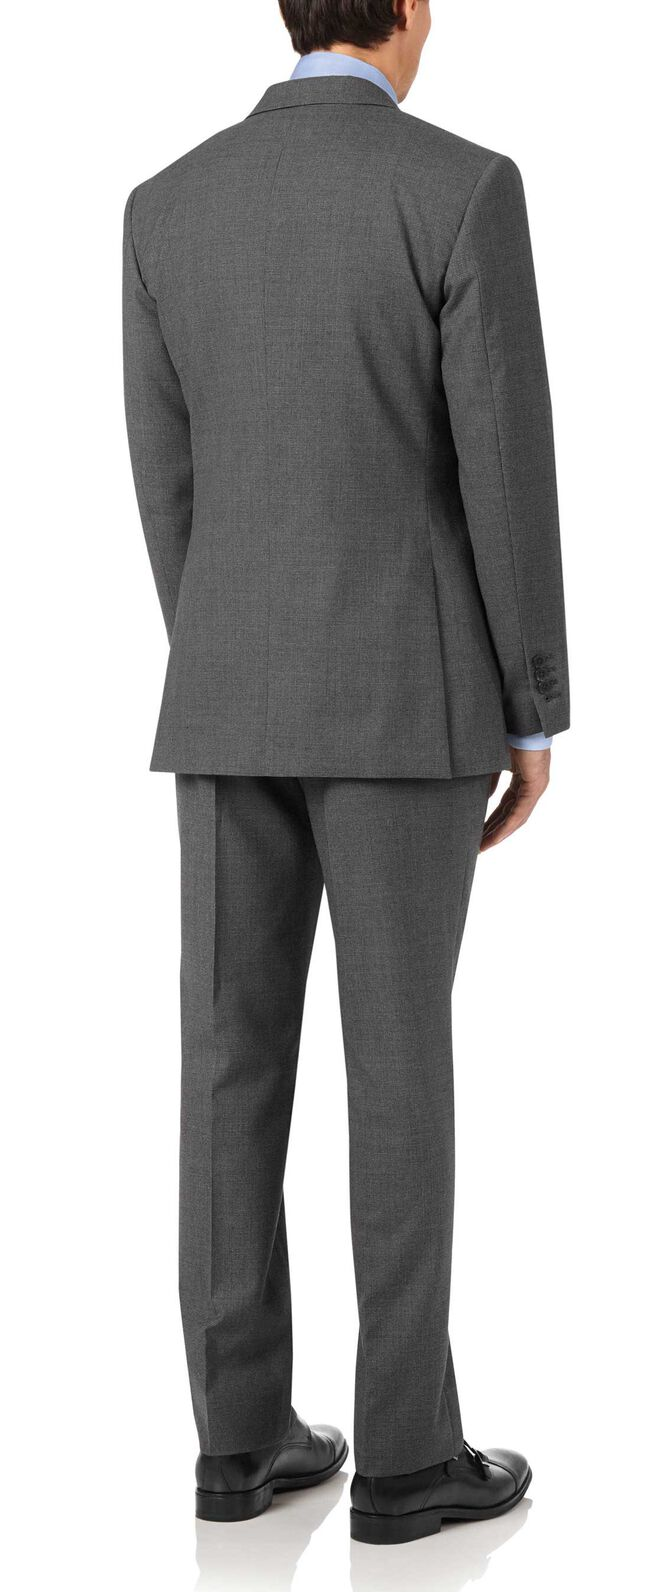 Charcoal slim fit Panama puppytooth business suit